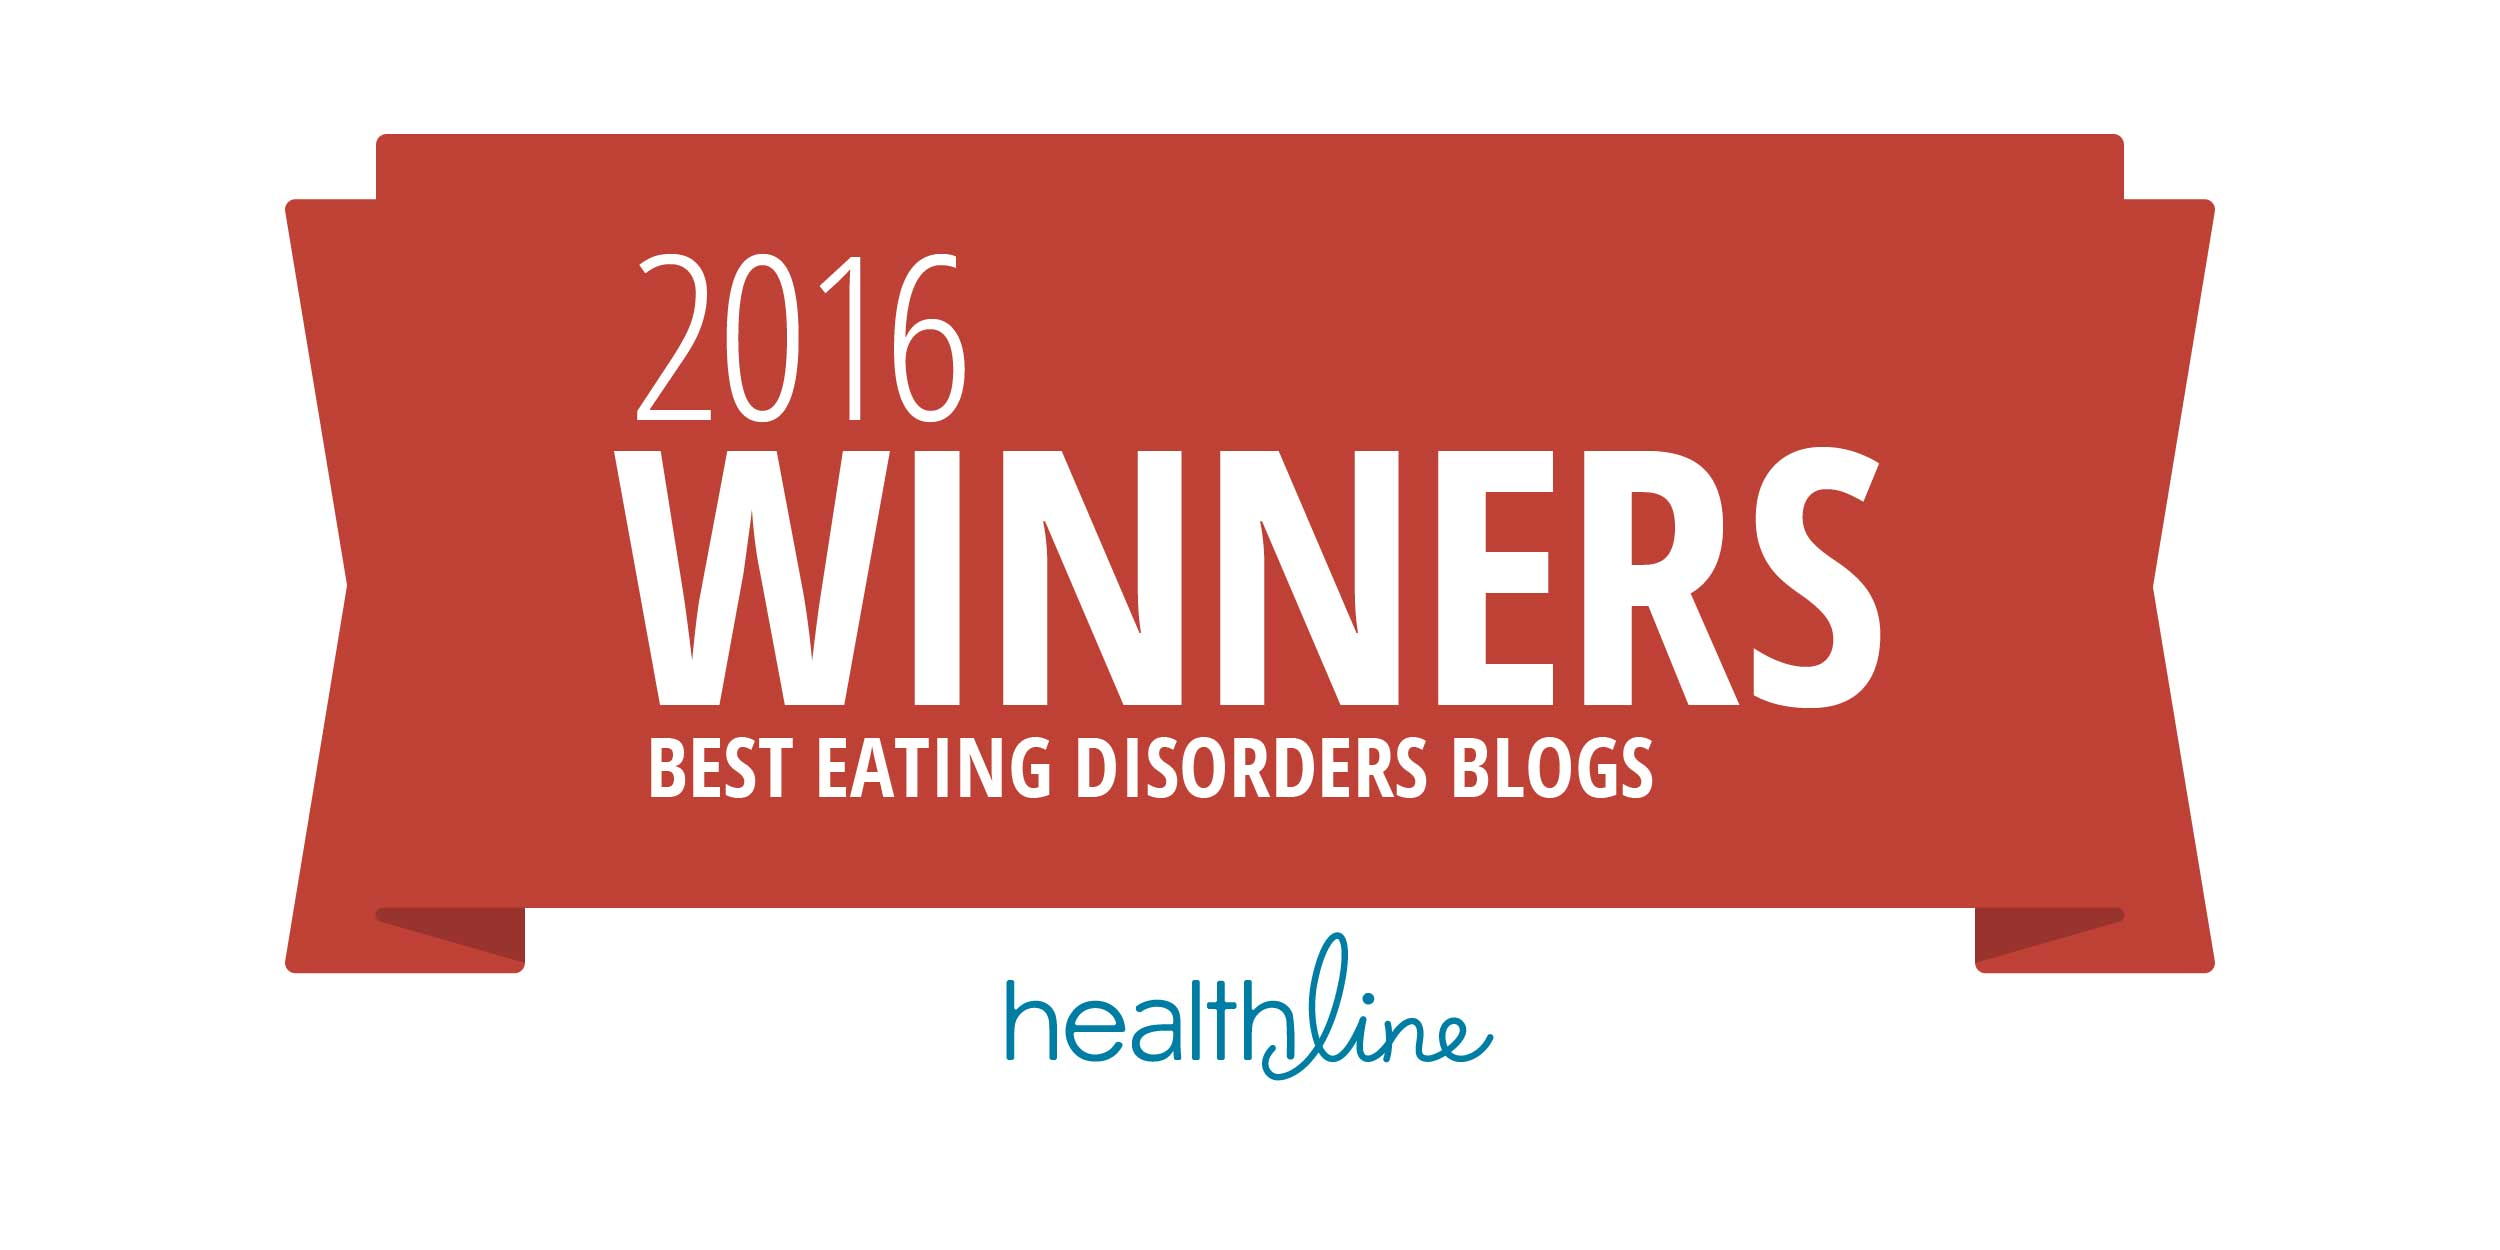 The Best Eating Disorders Blogs of the Year